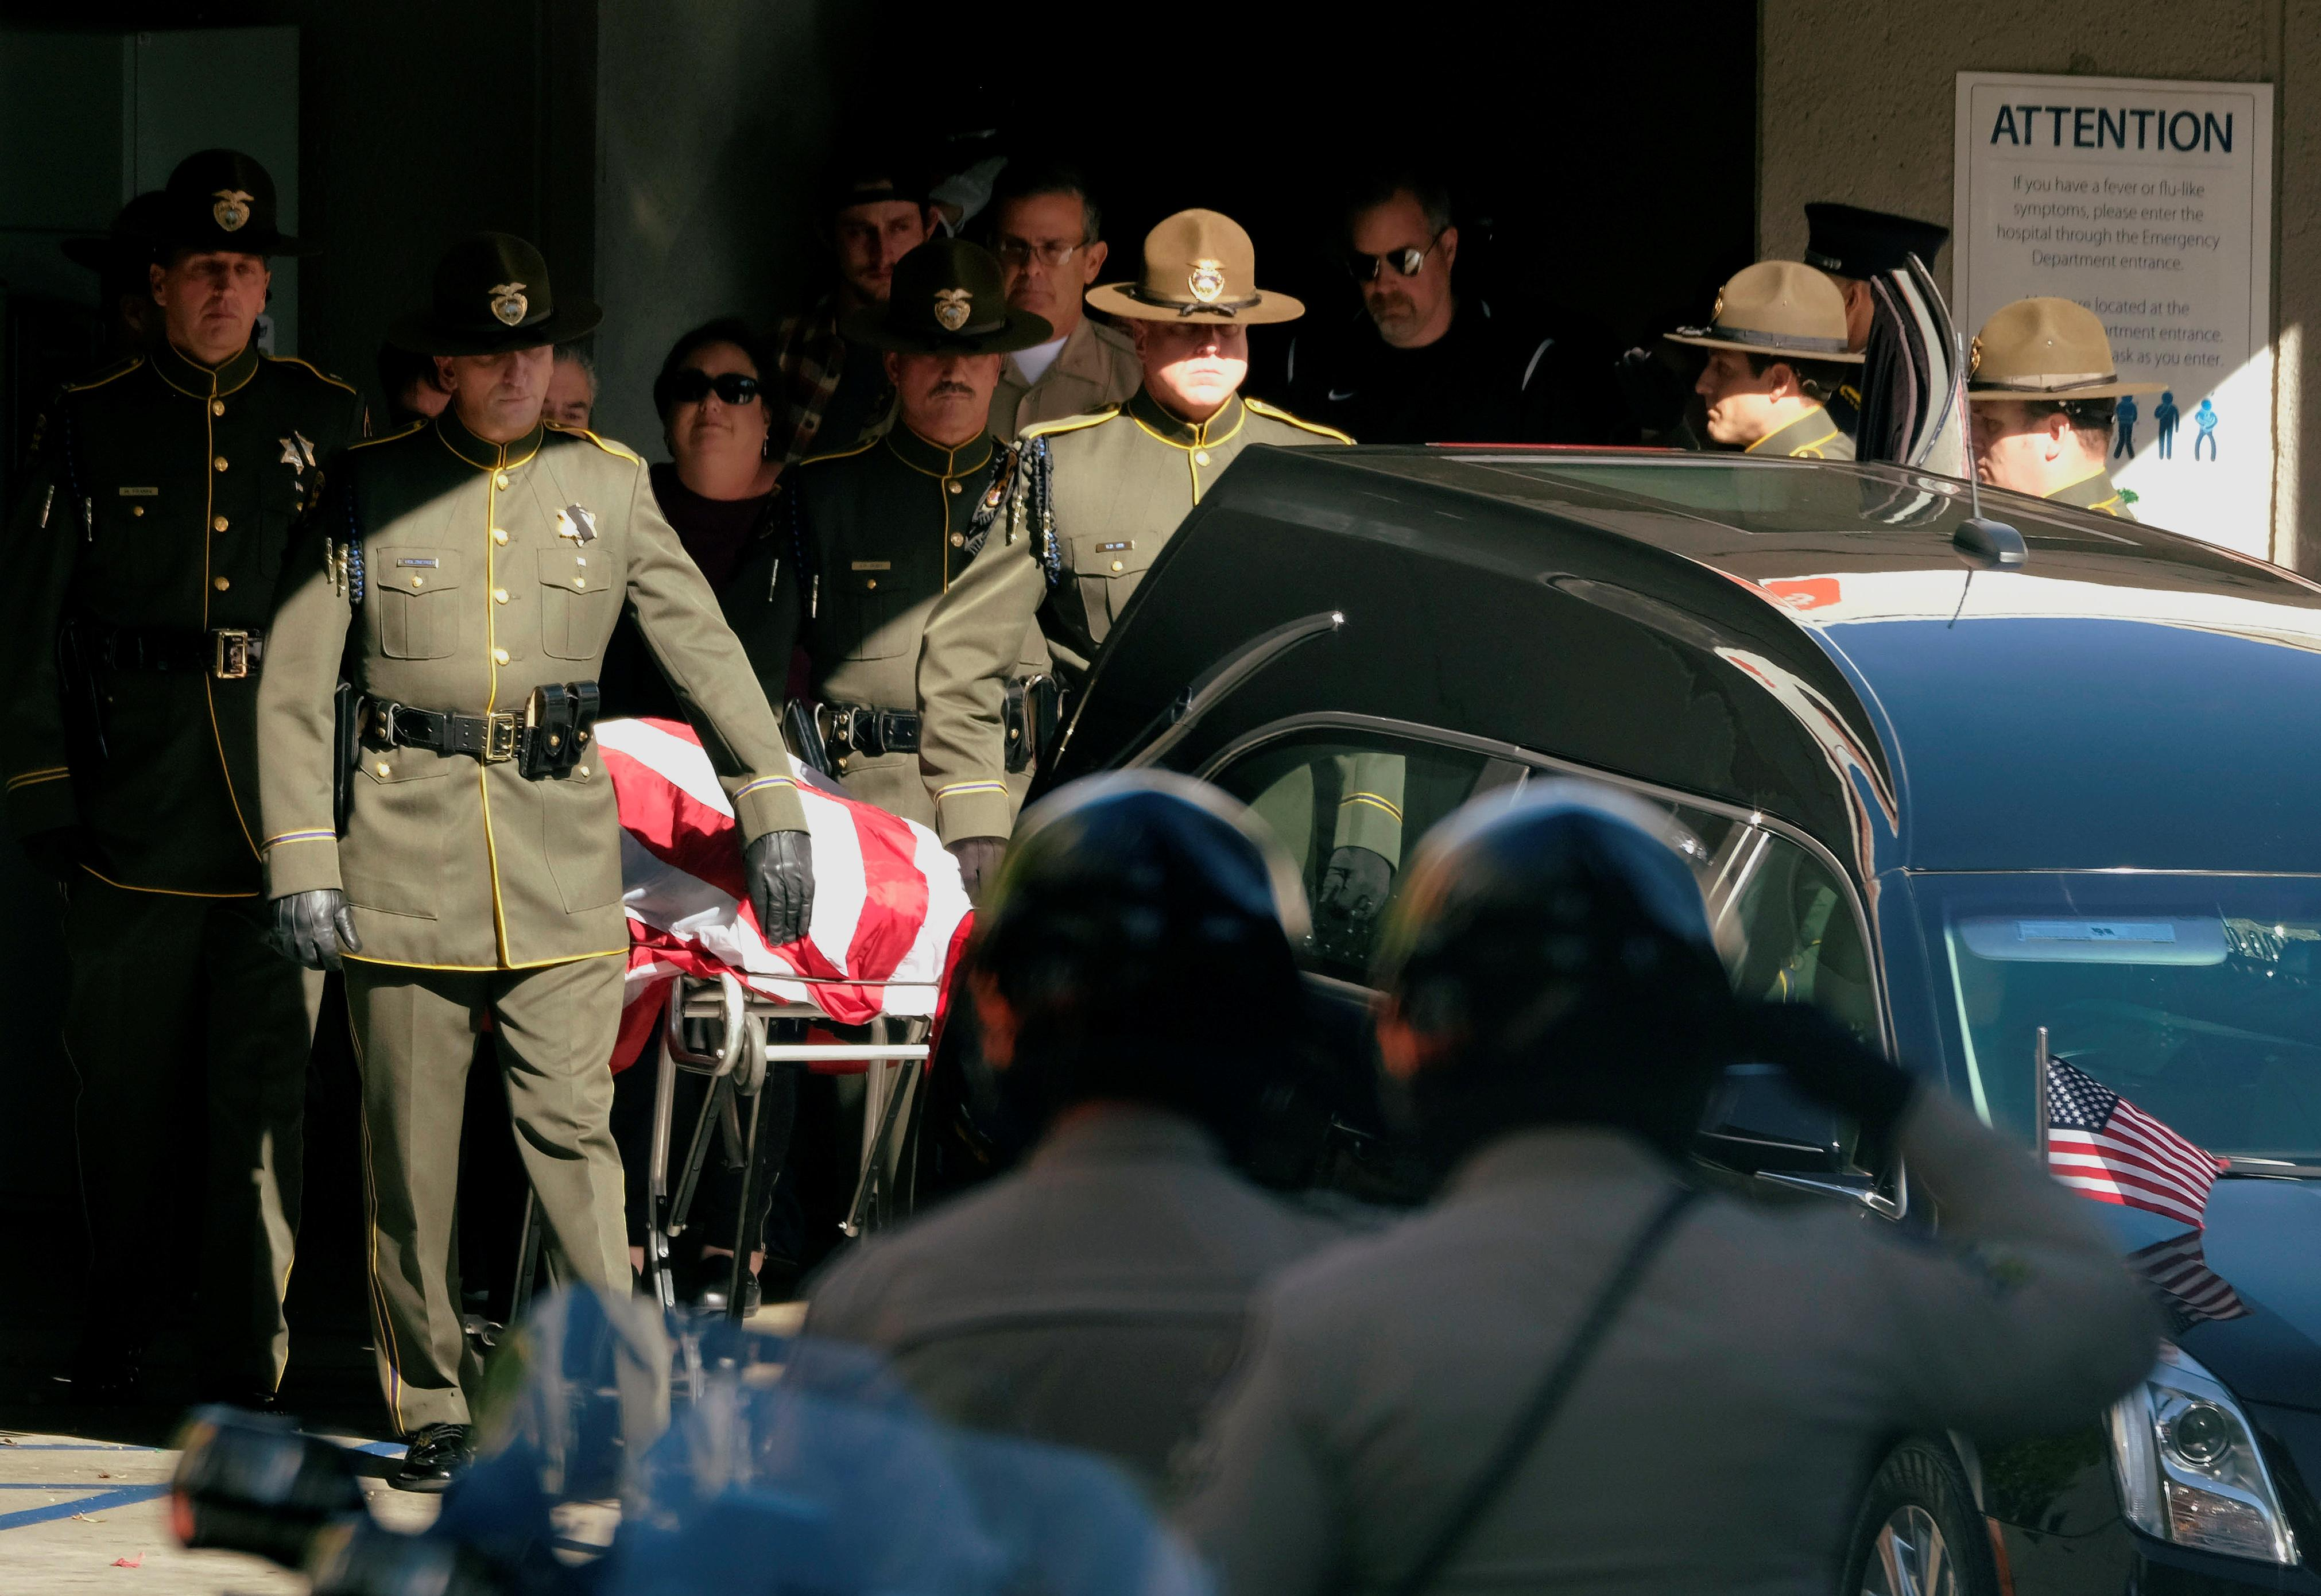 <p>The body of Ventura County Sheriff Sgt. Ron Helus, who was shot and killed in a mass shooting at a bar is transferred to a hearse for procession from the Los Robles Medical Center in Thousand Oaks, Calif., Nov. 8, 2018. (Photo: Ringo Chiu/Reuters) </p>